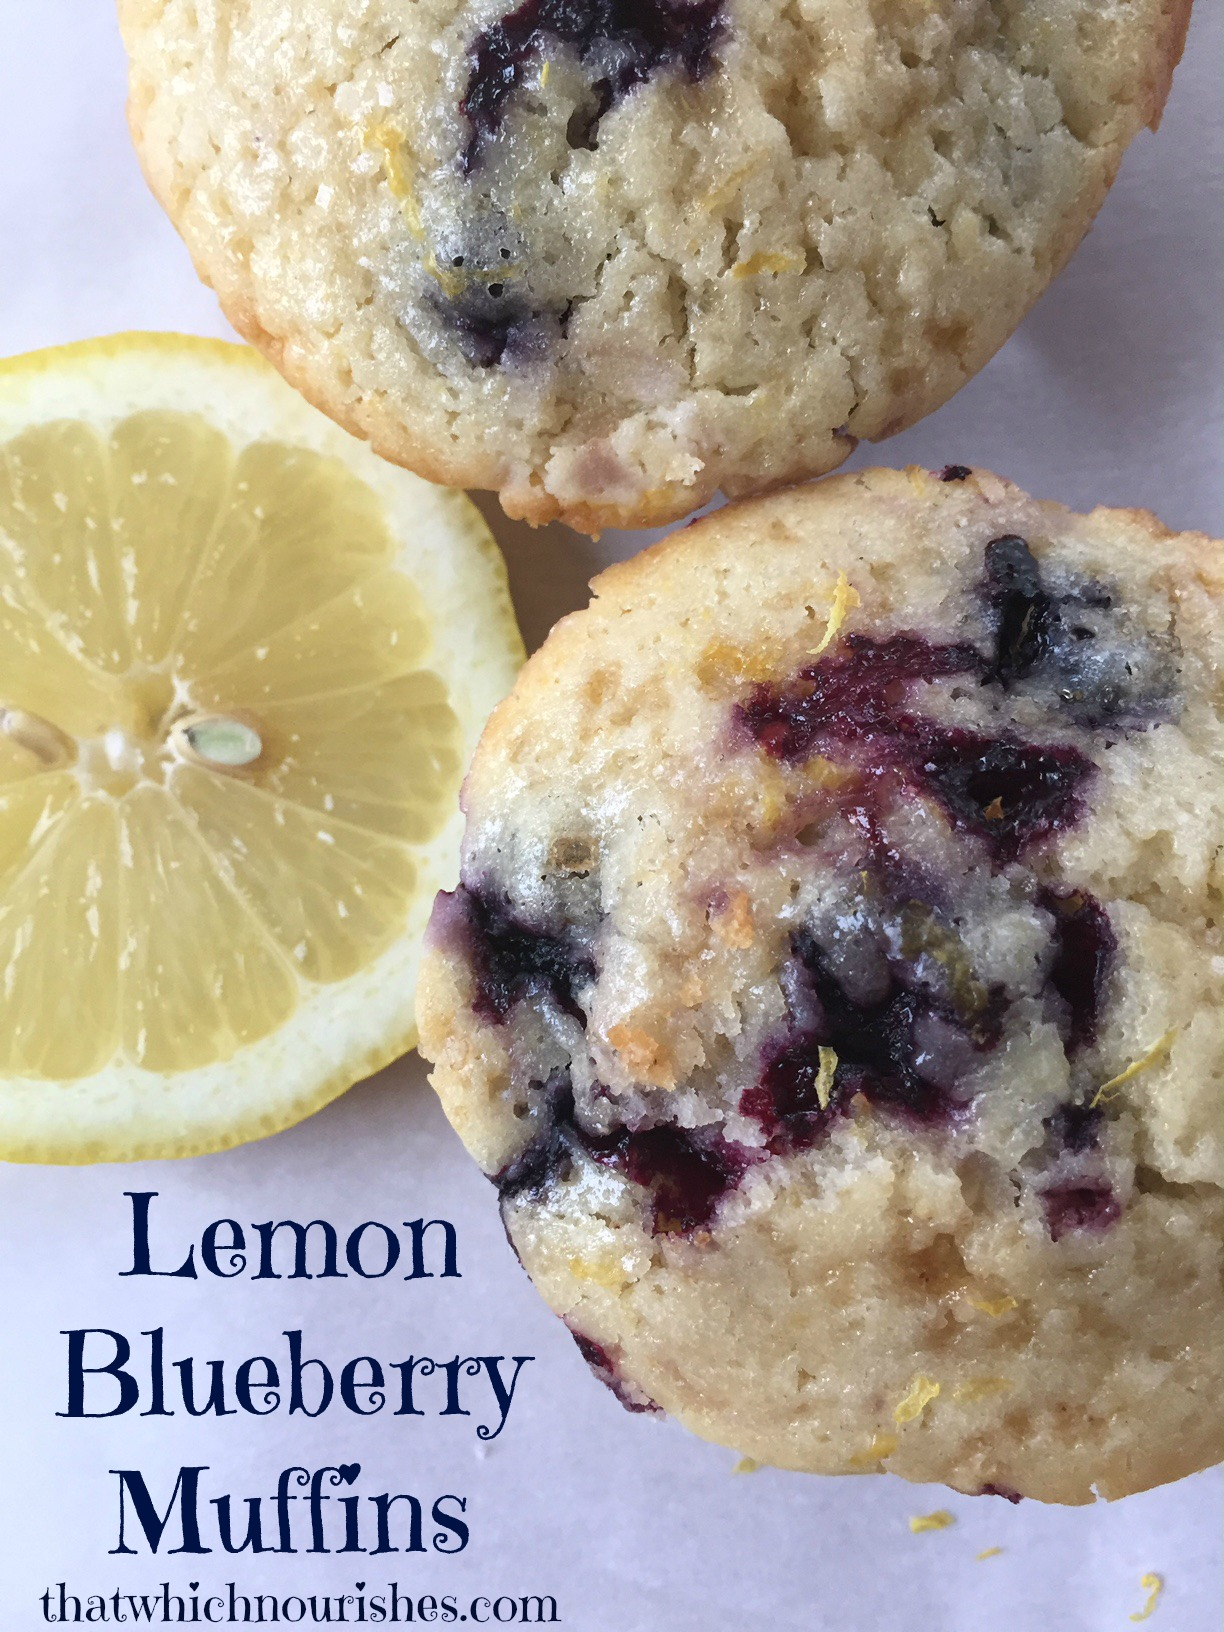 Lemon Blueberry Muffins ⋆ That Which Nourishes